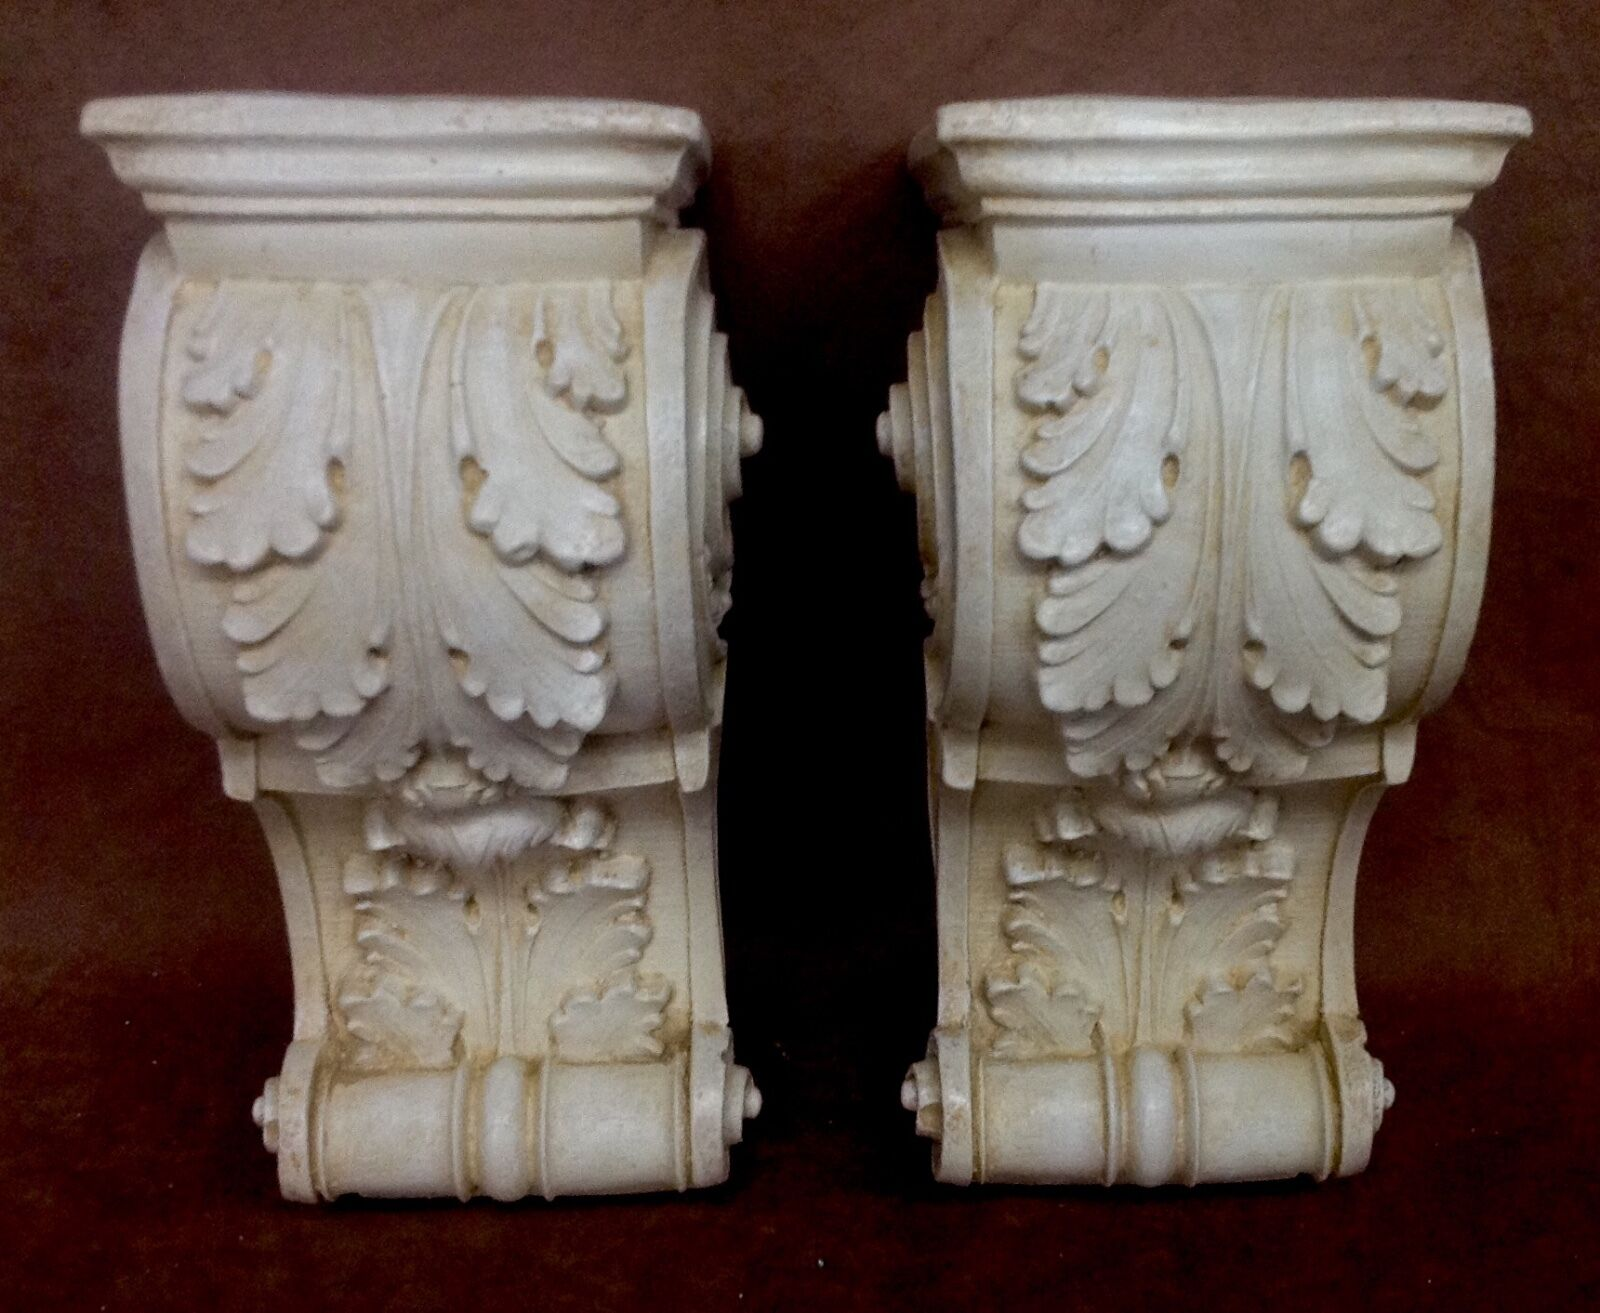 PAIR ANTIQUE FINISH Shelf Acanthus Leaf Wall Corbel Sconce